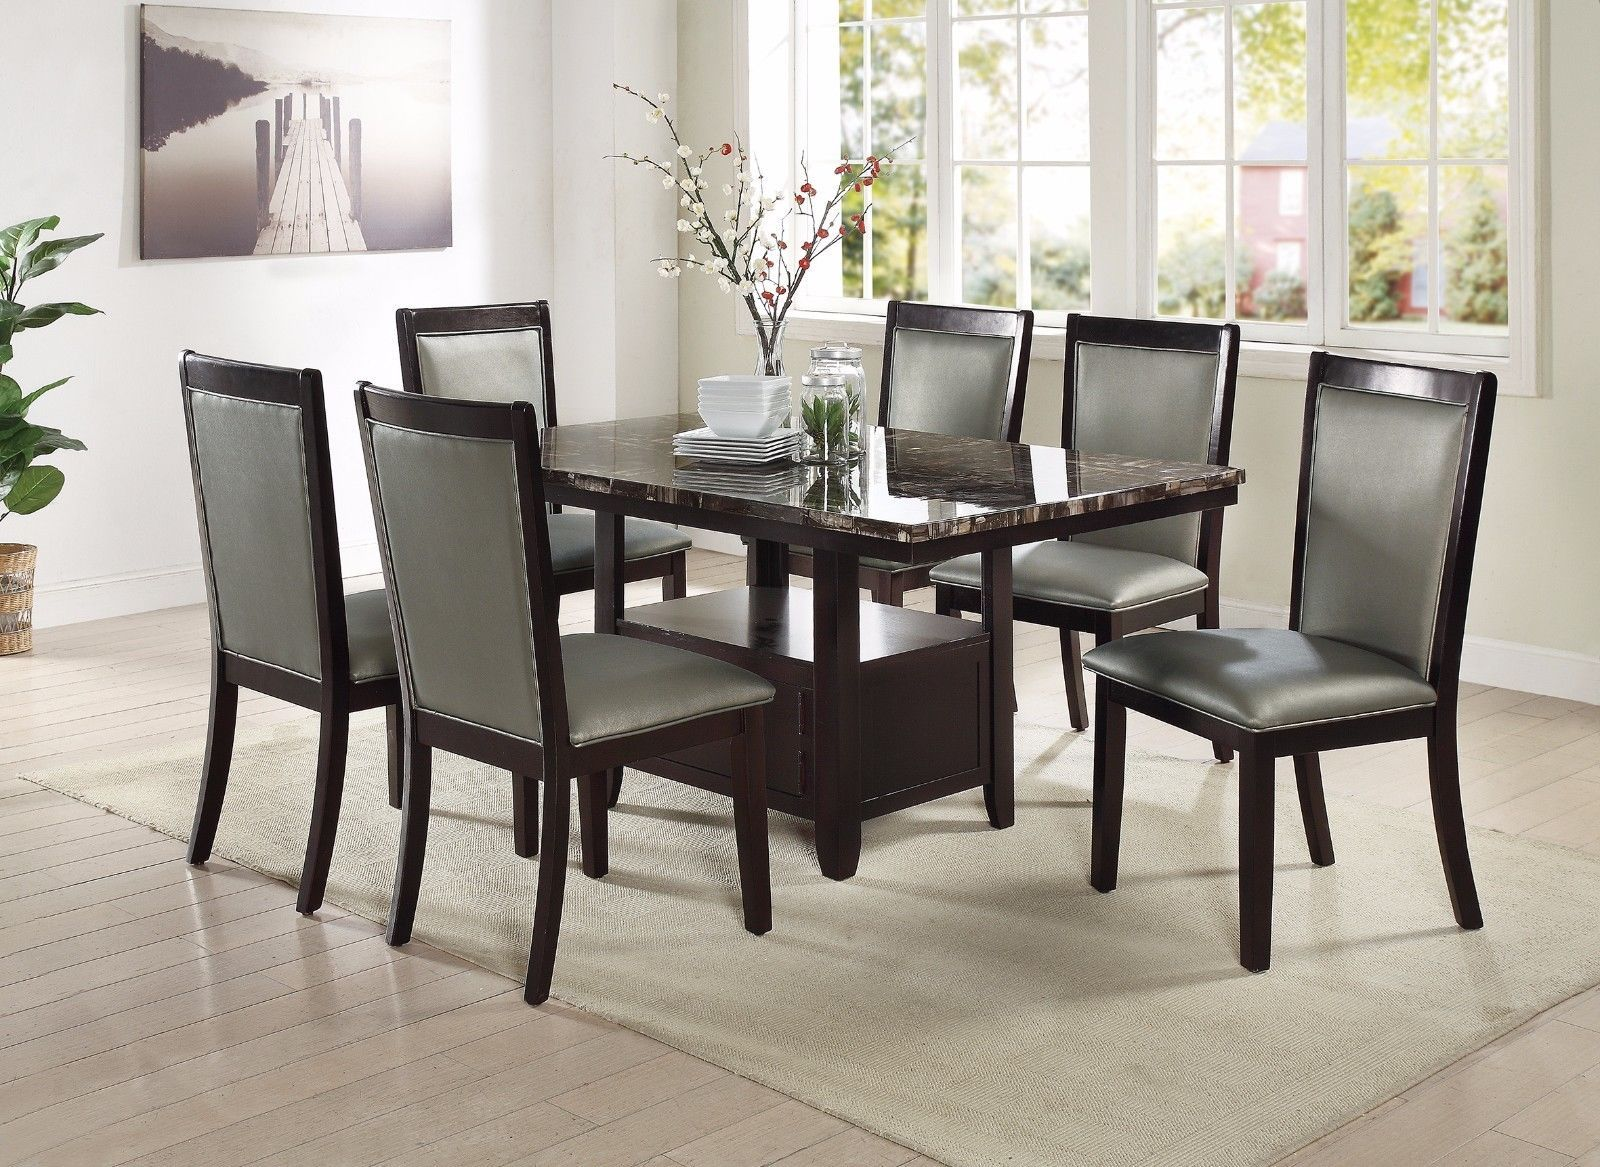 Espresso Marble Top Dining Table Kitchen Silver Leather Chairs 7pc Set